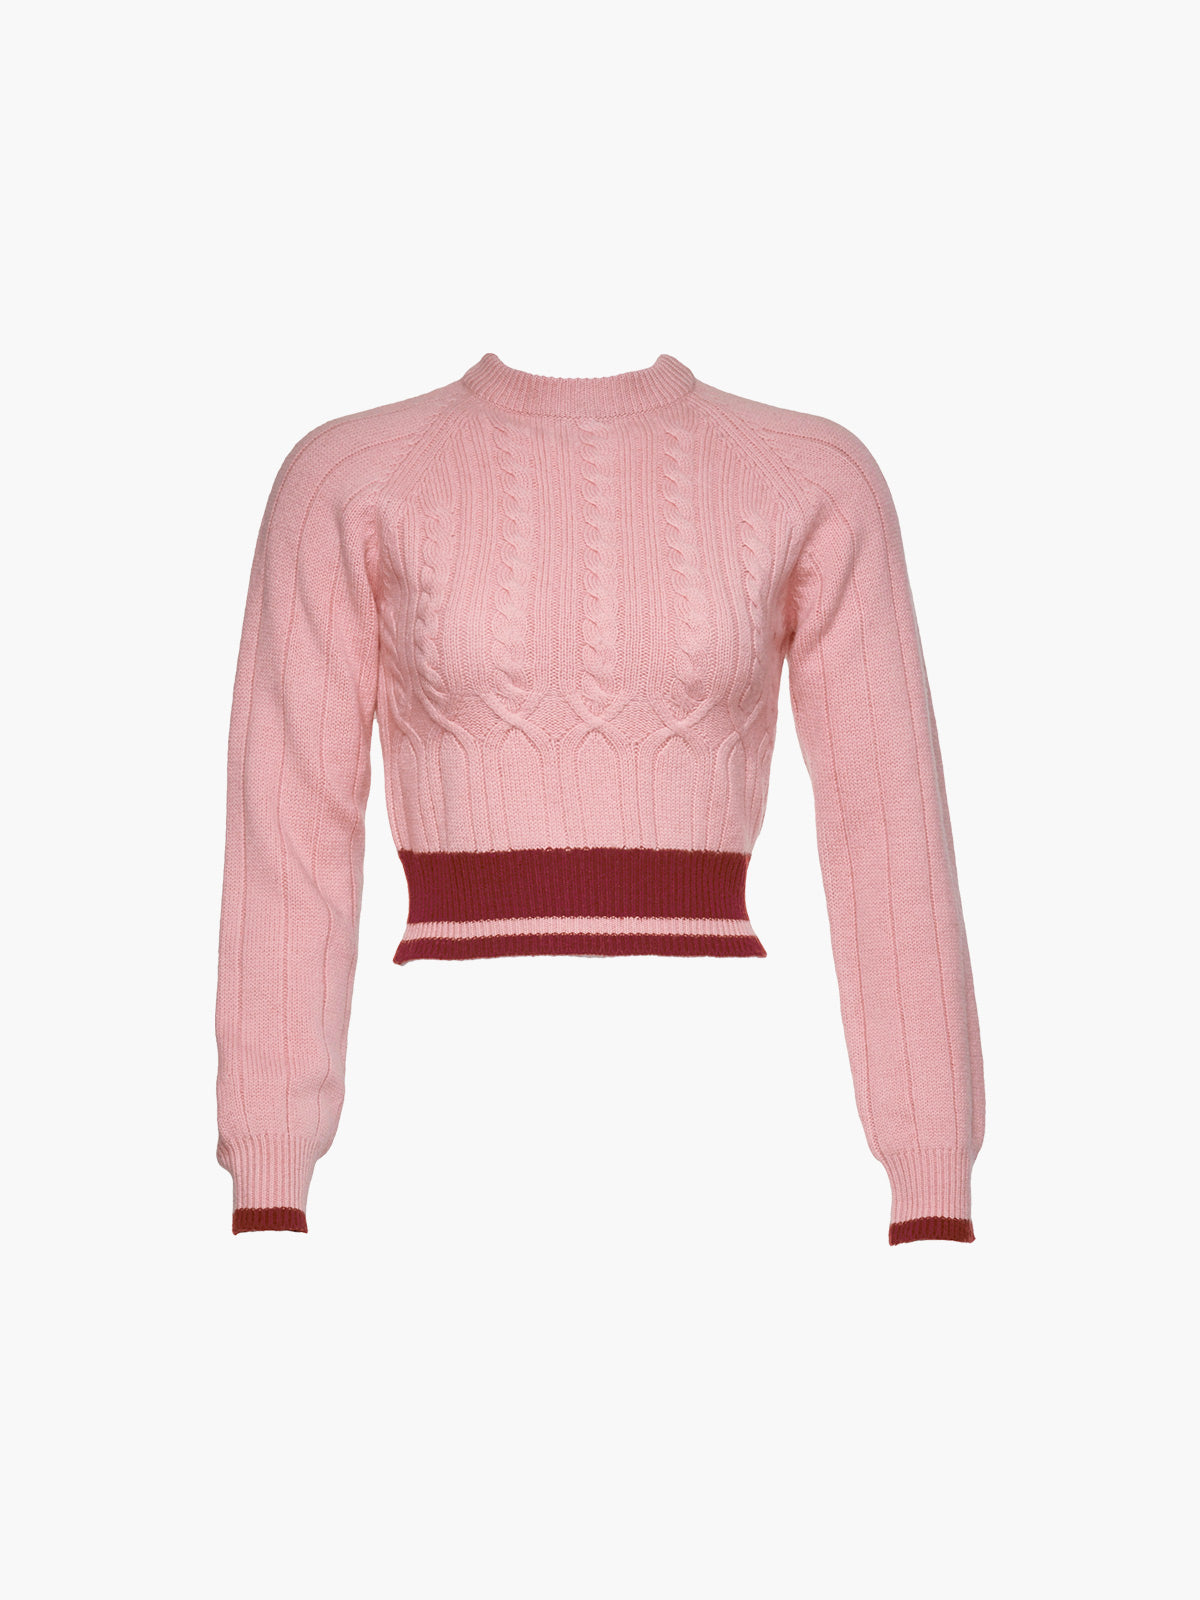 Morasca Sweater Pink